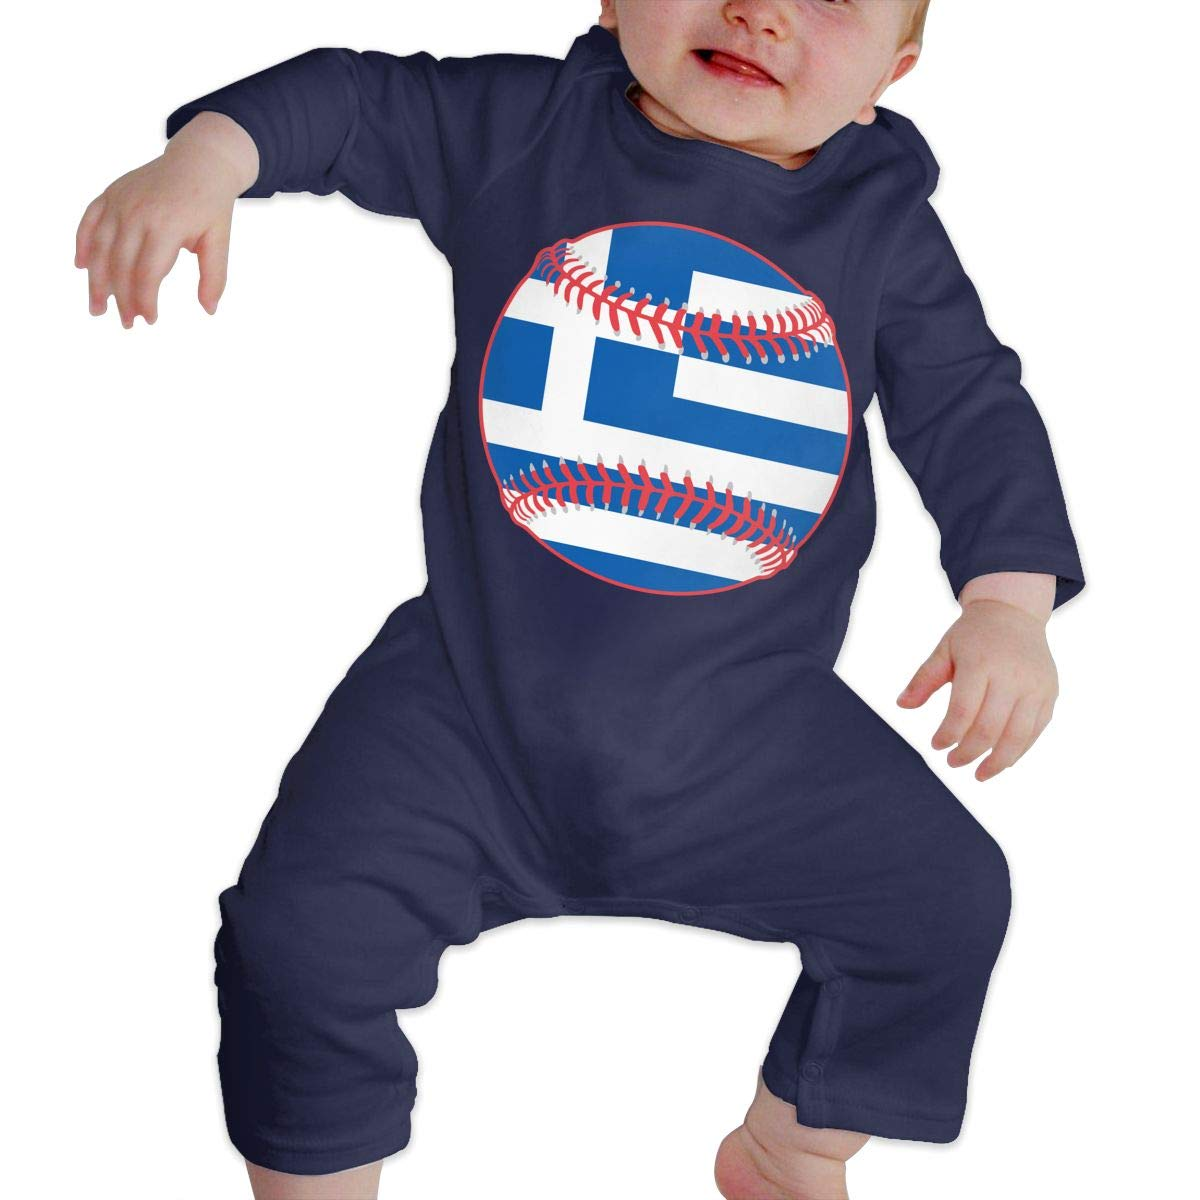 Mri-le1 Newborn Kids Long Sleeved Coveralls Greece Flag Baseball Clipart Baby Clothes